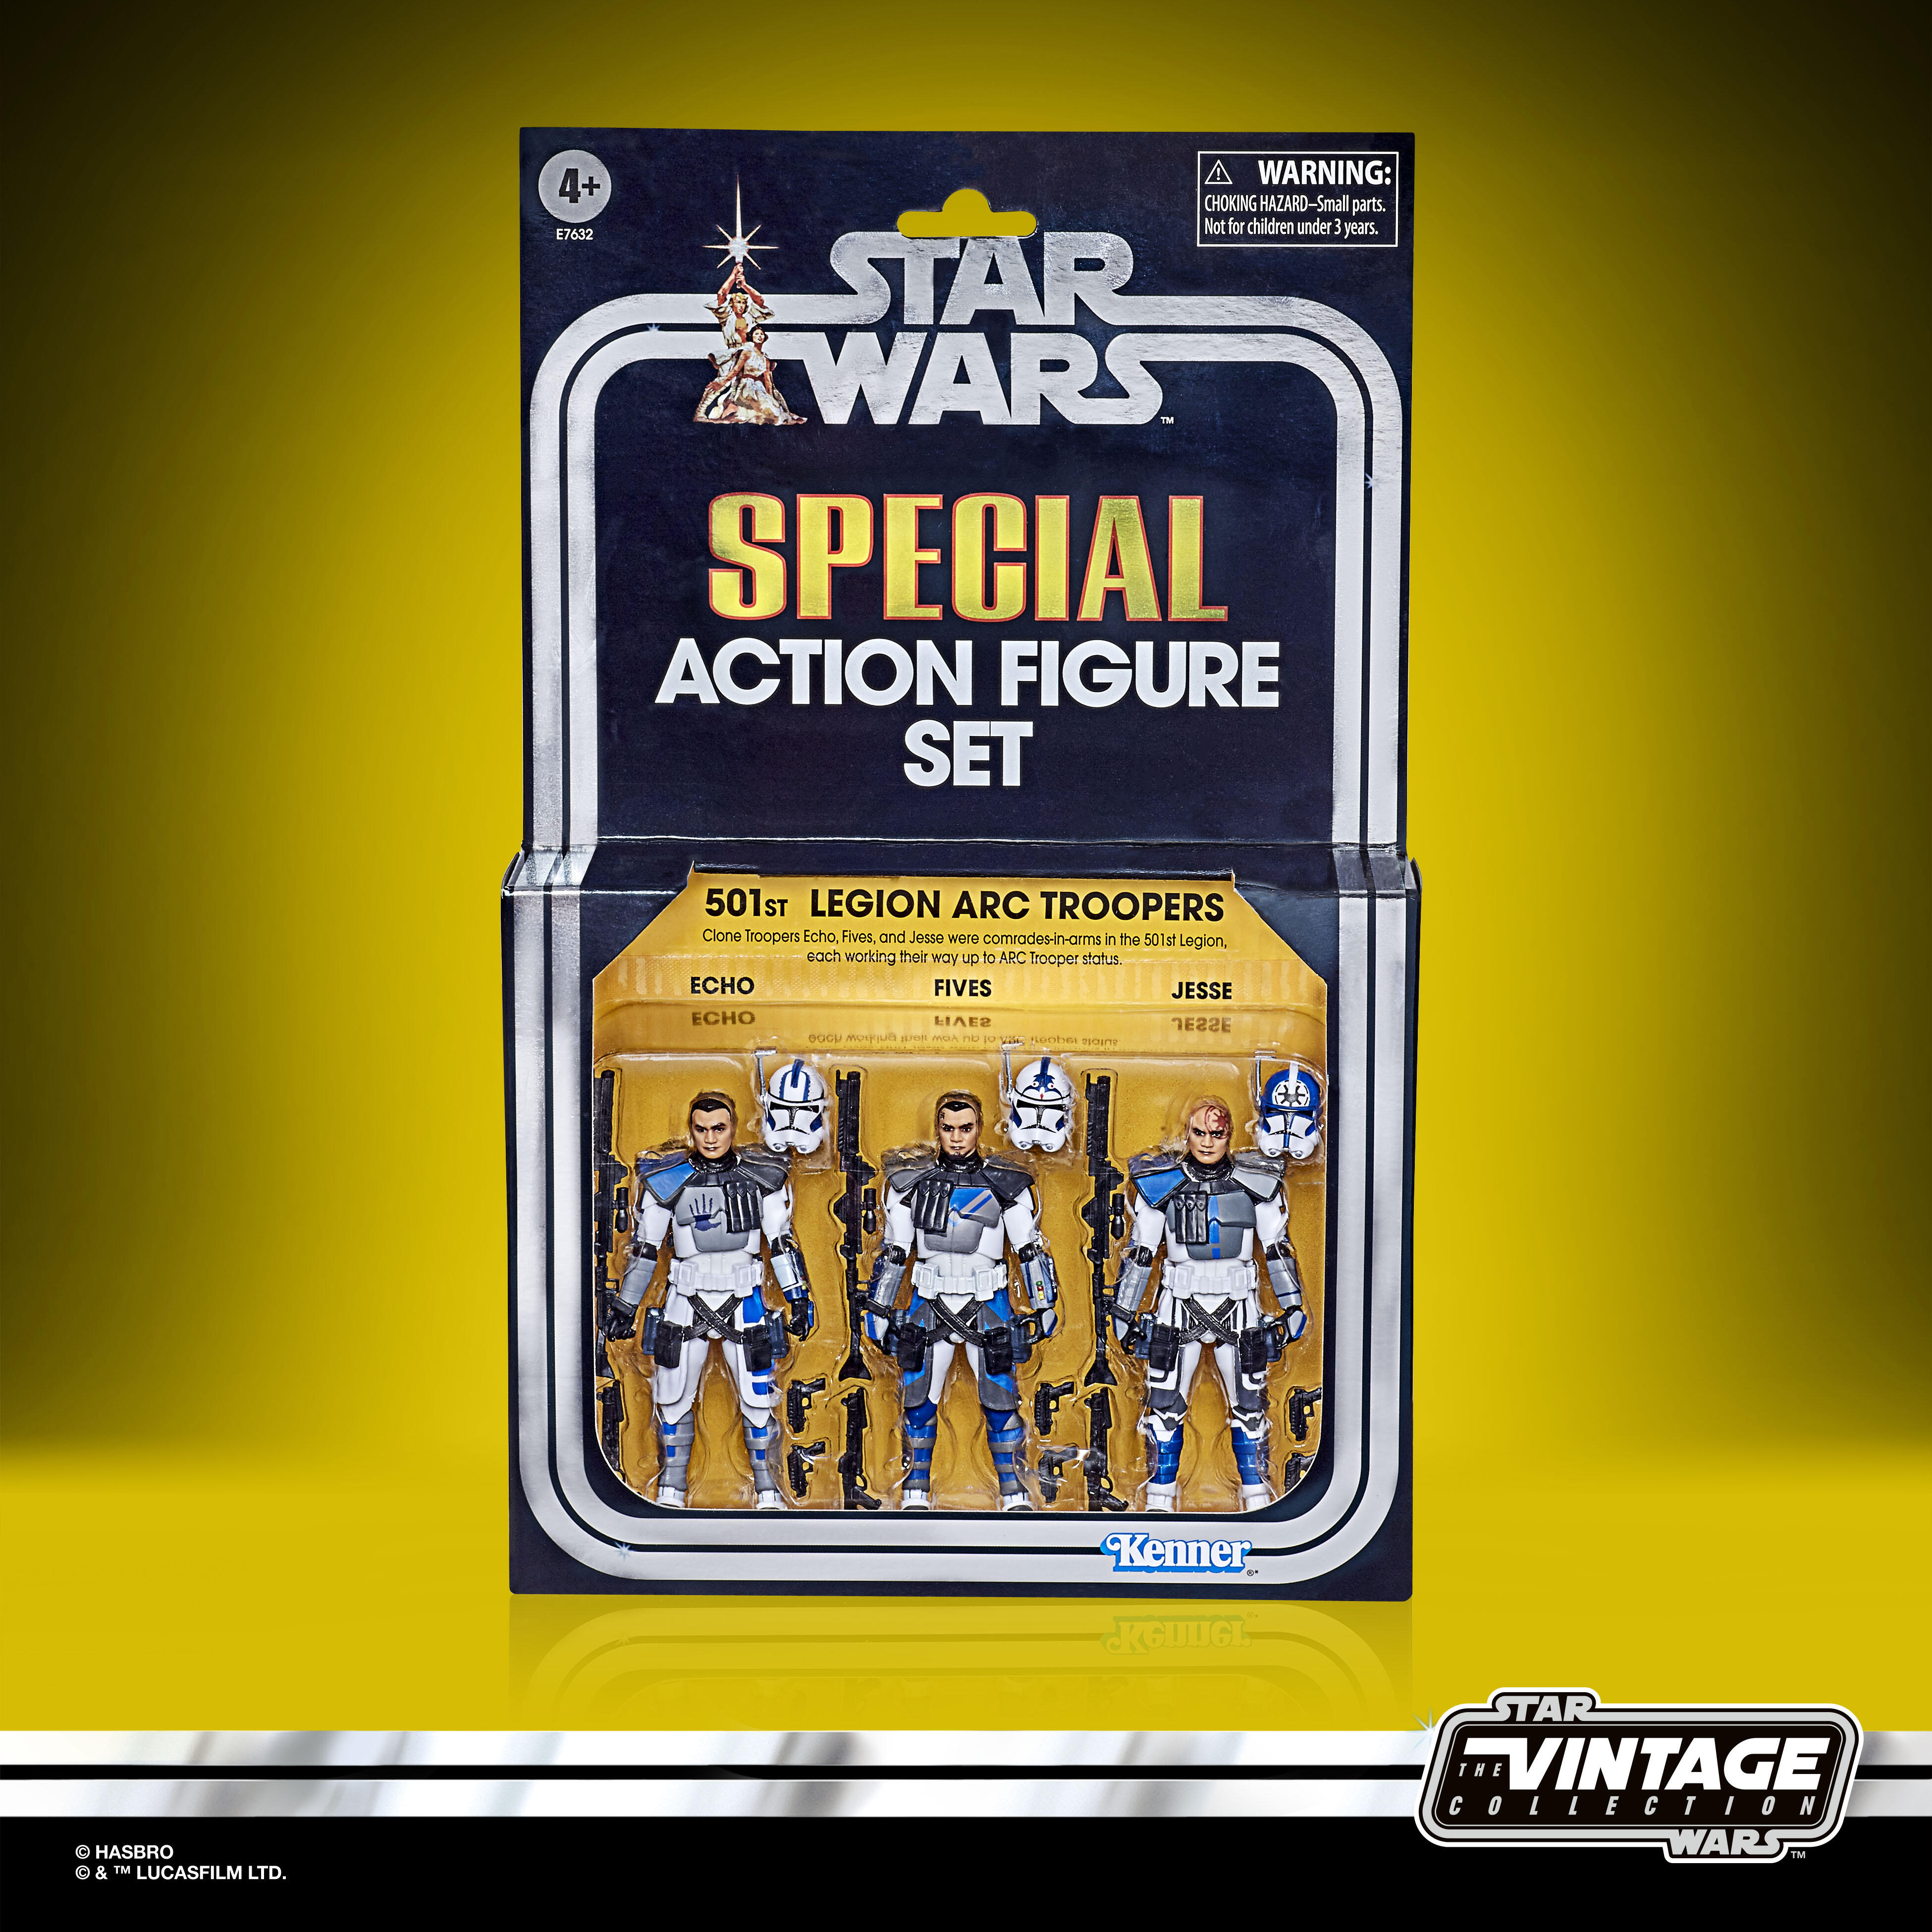 The boxed Vintage Collection 501st Legion Arc Troopers